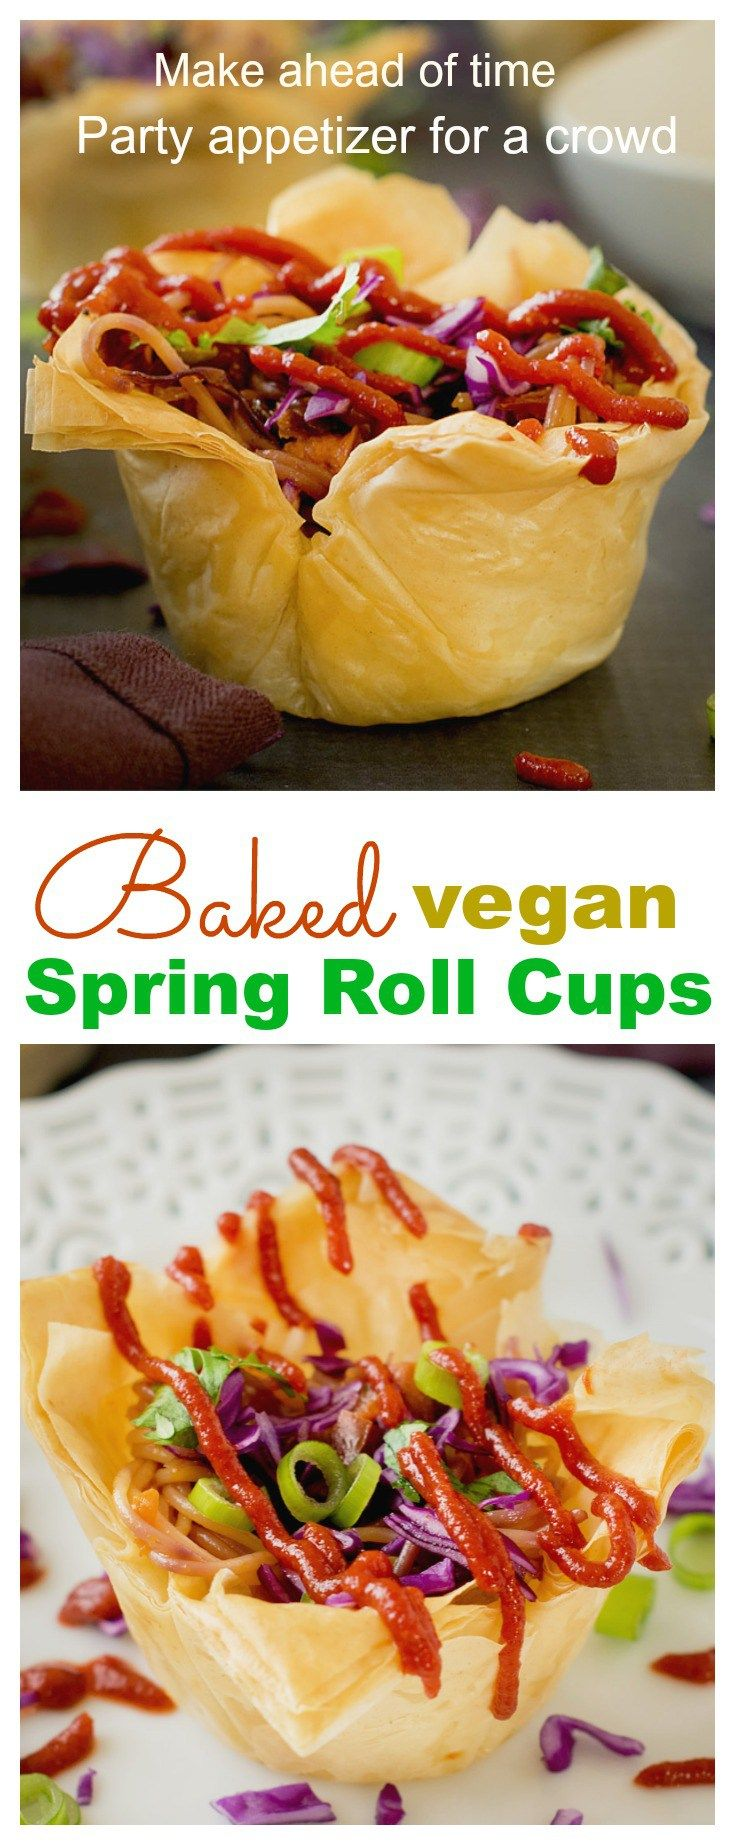 Baked deconstructed veg spring rolls makes a showstopper appetizer made with phyllo sheets #vegan with make ahead of time tips